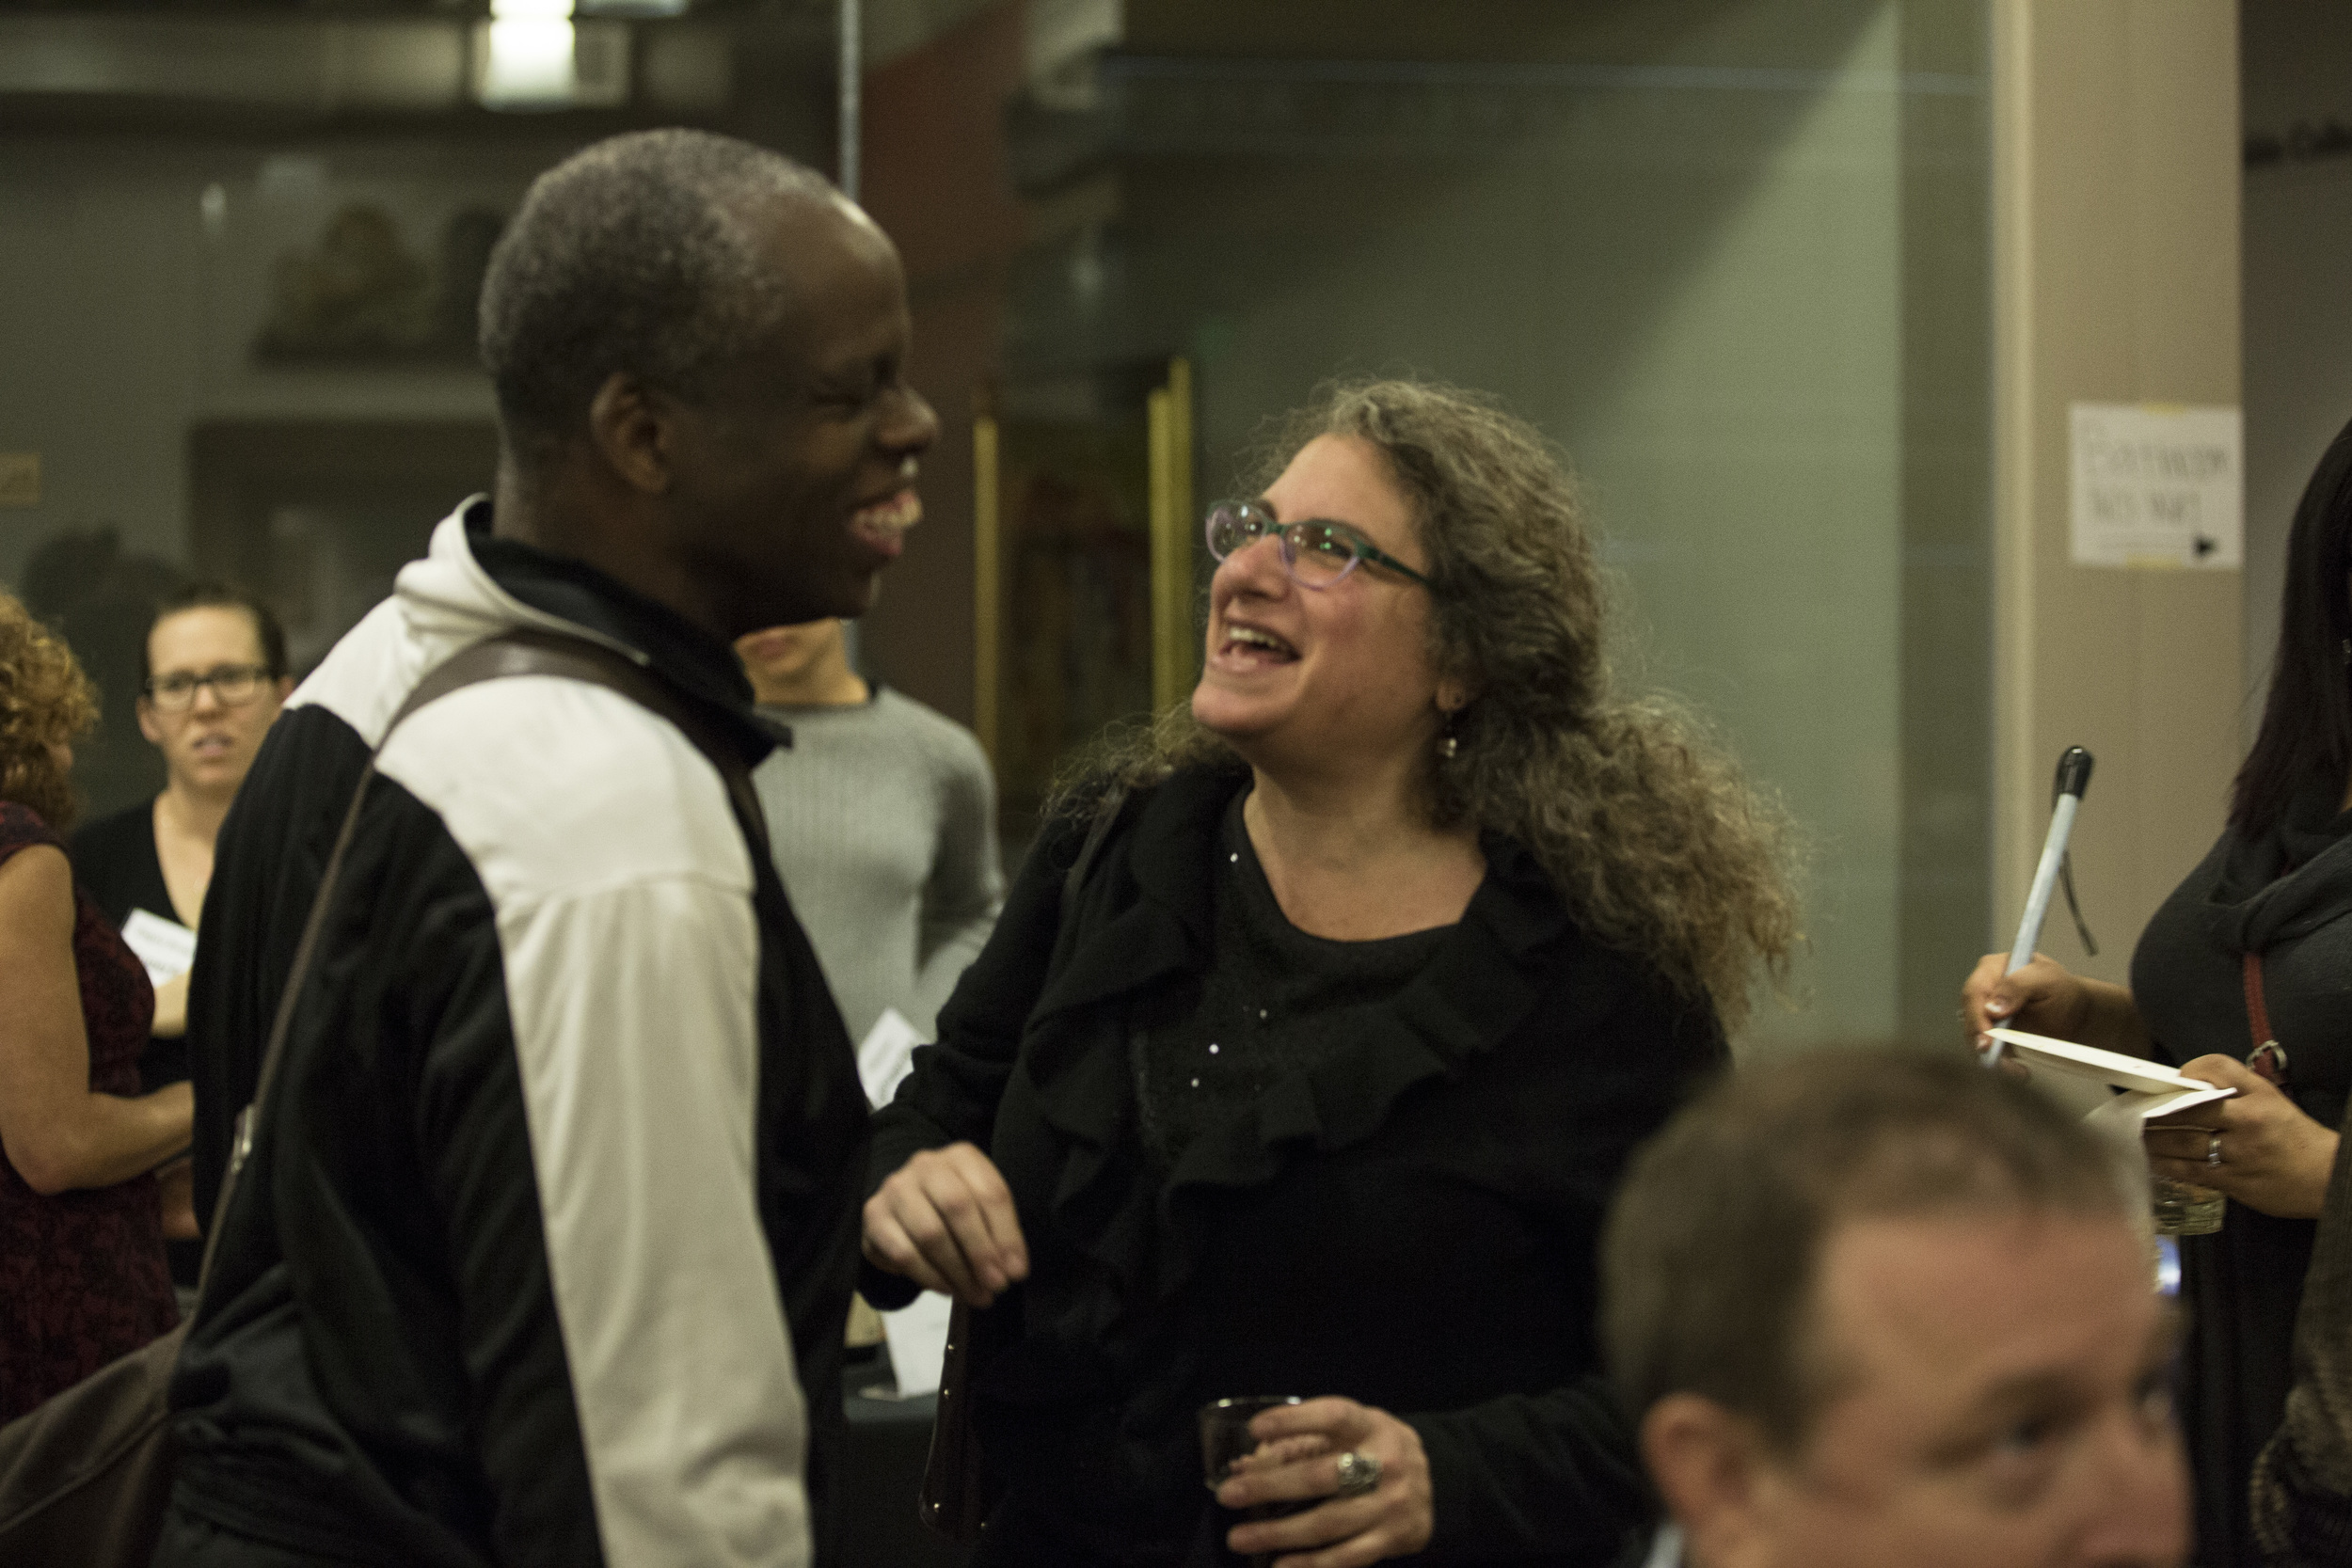 Superfest judge and filmmaker share a laugh at the Saturday night pre-party.